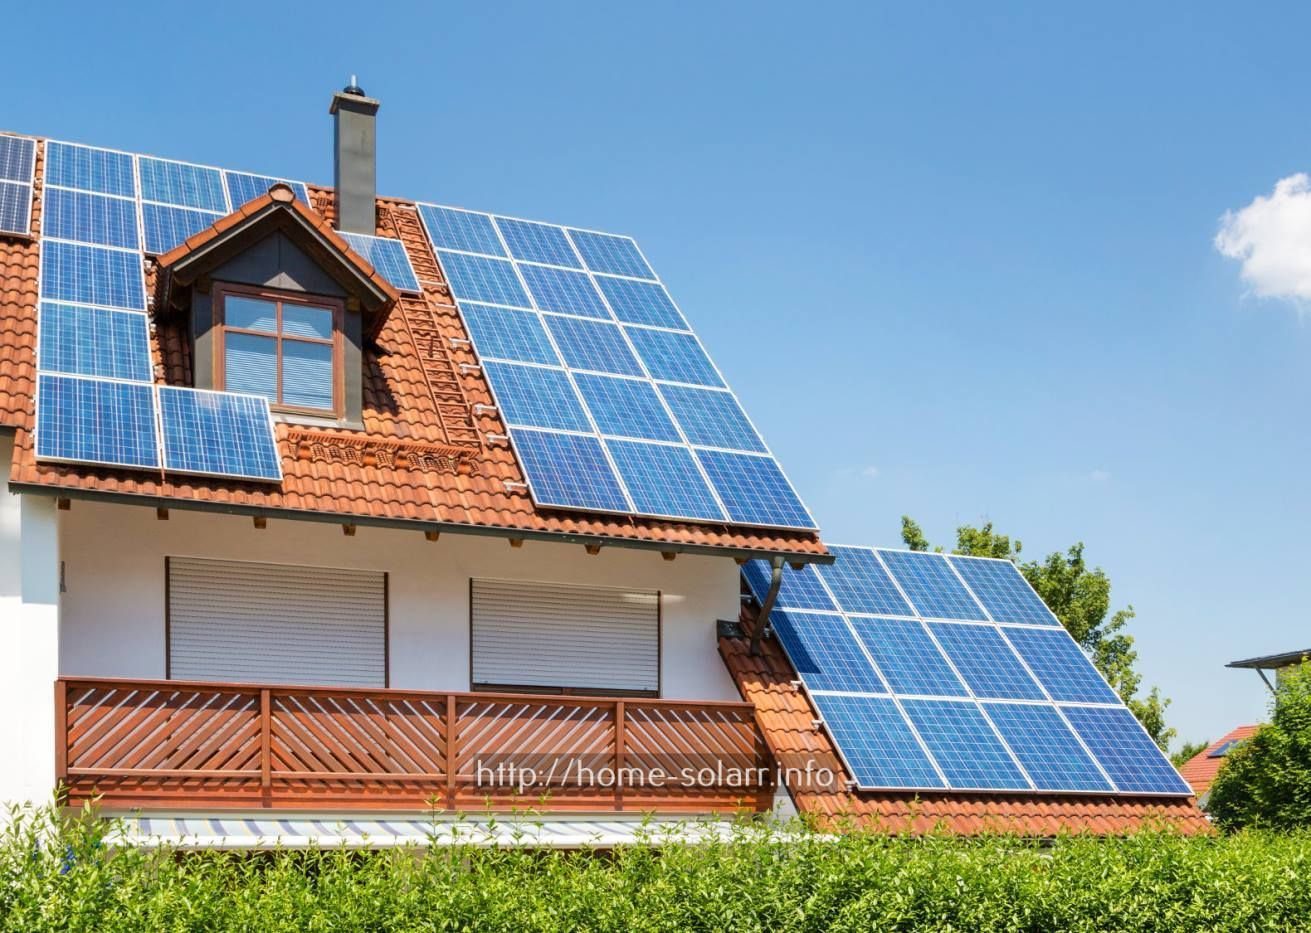 Best Solar Panels For Your Home Solar Punk Stained Glass Cost Of Adding Solar Panels To Your Home 6011751331 Best Solar Panels Residential Solar Solar Panels